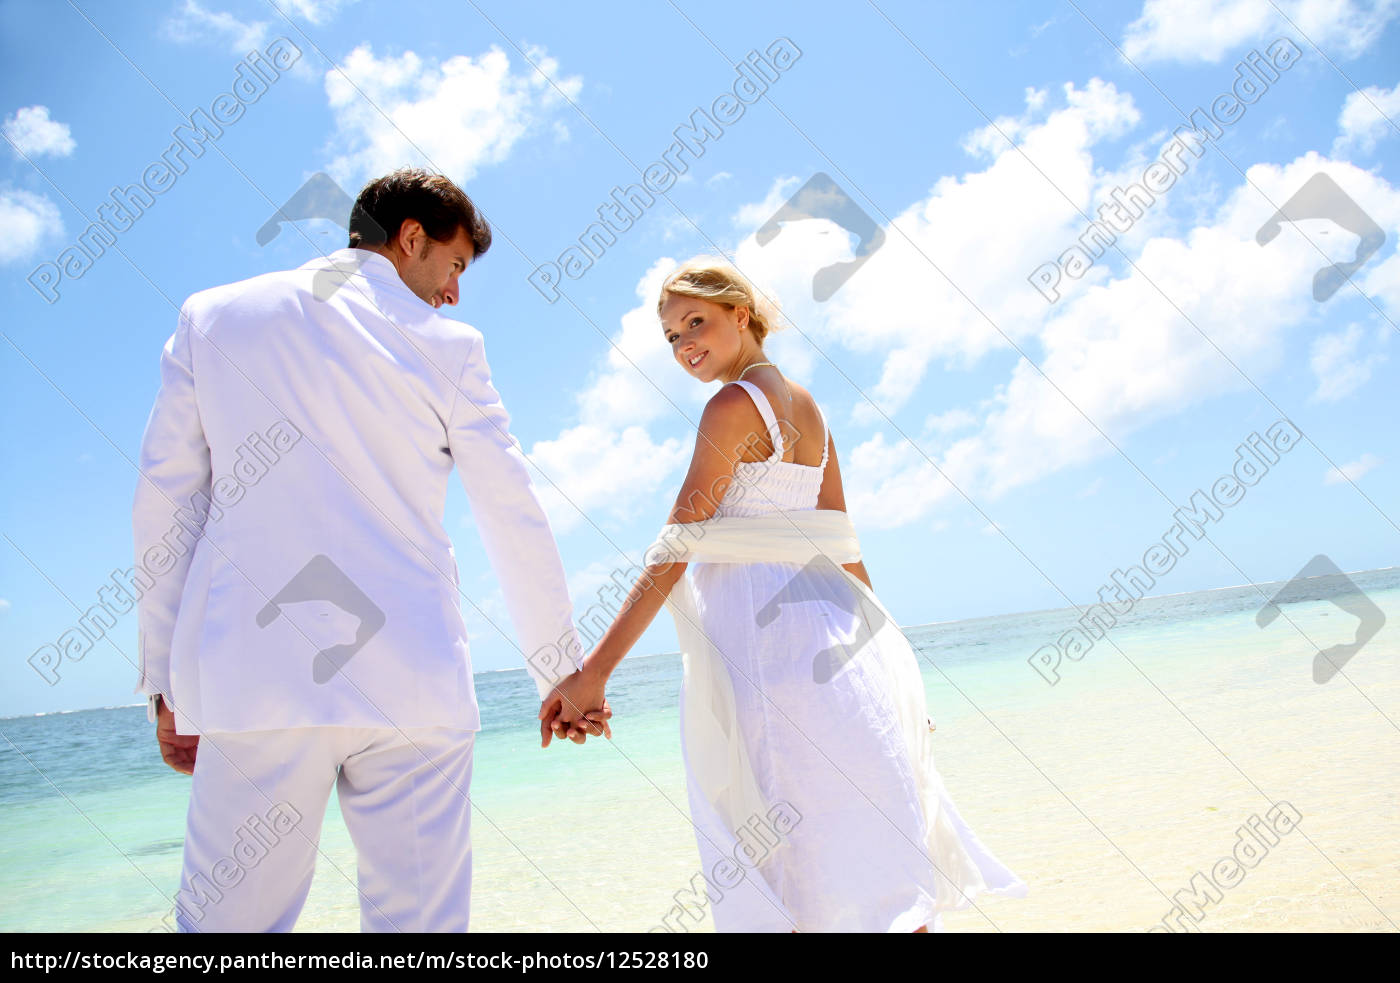 just-married, couple, standing, by, blue, lagoon - 12528180